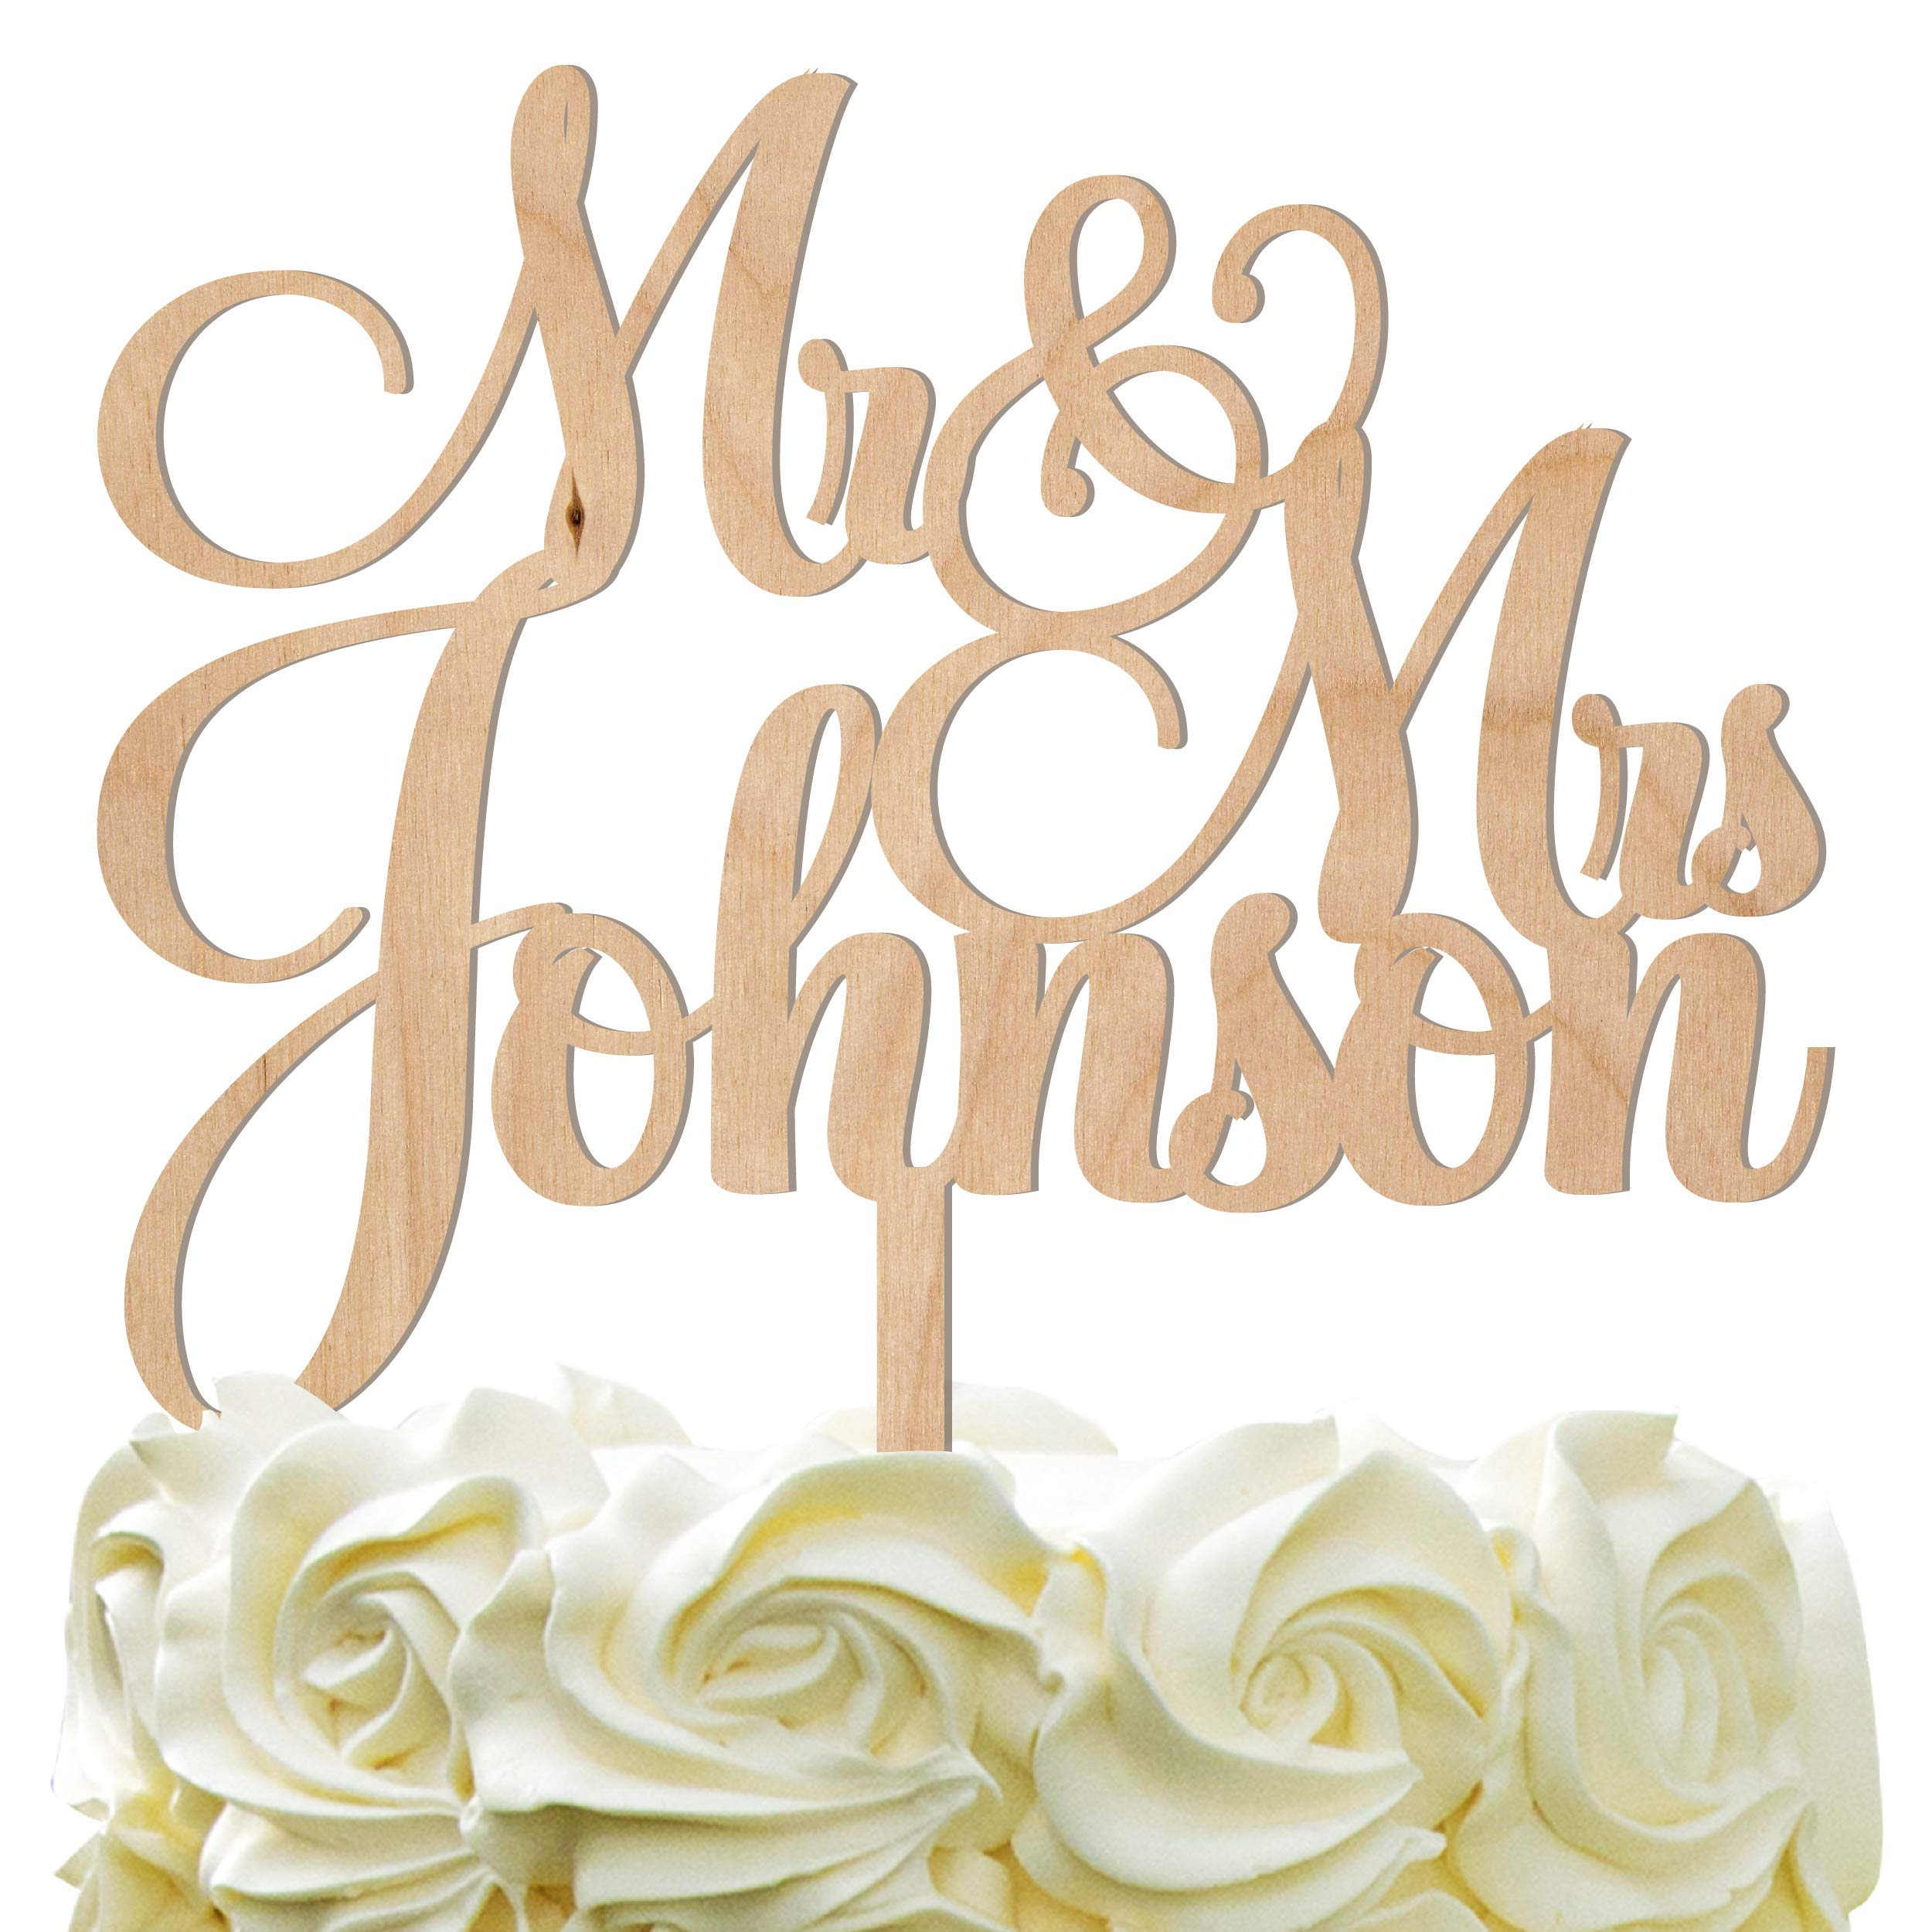 Personalized Wedding Cake Topper - Wedding Cake Decoration Customized Mr & Mrs Last Name To Be Bride & Groom script fontWood